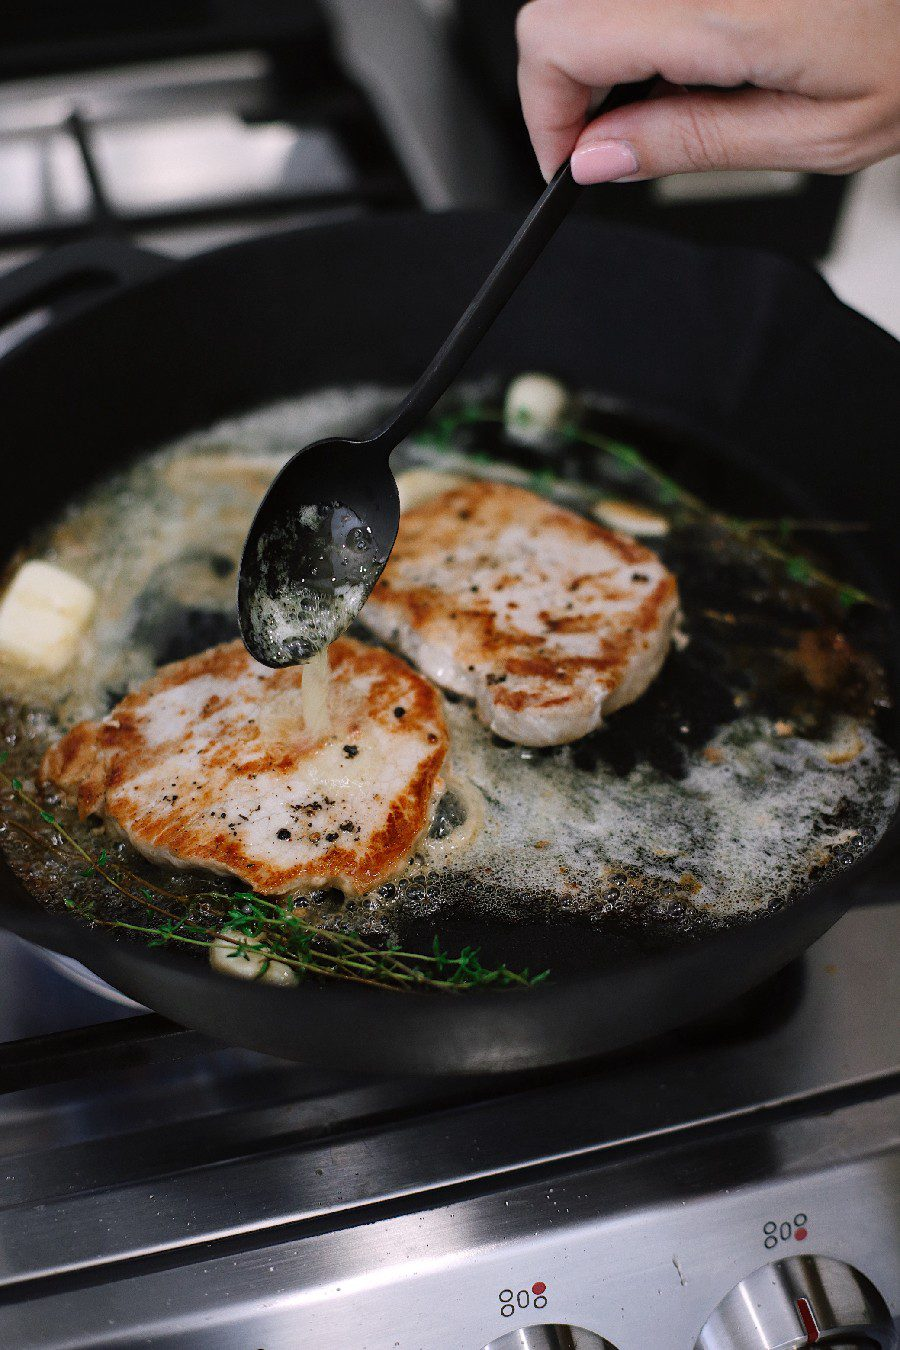 How To Cook Tender Skillet Pork Chops in the Oven What if I told you we figured out how to make sure to get those tender, juicy skillet pork chops every time, with a quick roast in the oven? Ready to say goodbye to dry, flavorless chops? These tips will have you adding tender pork chops back to your rotation. Try our pork chop recipe with browned butter garlic sauce! | Skillet Pork Chops by popular Florida lifestyle blog, Fresh Mommy Blog: image of a woman cooking skillet pork chops in her kitchen.